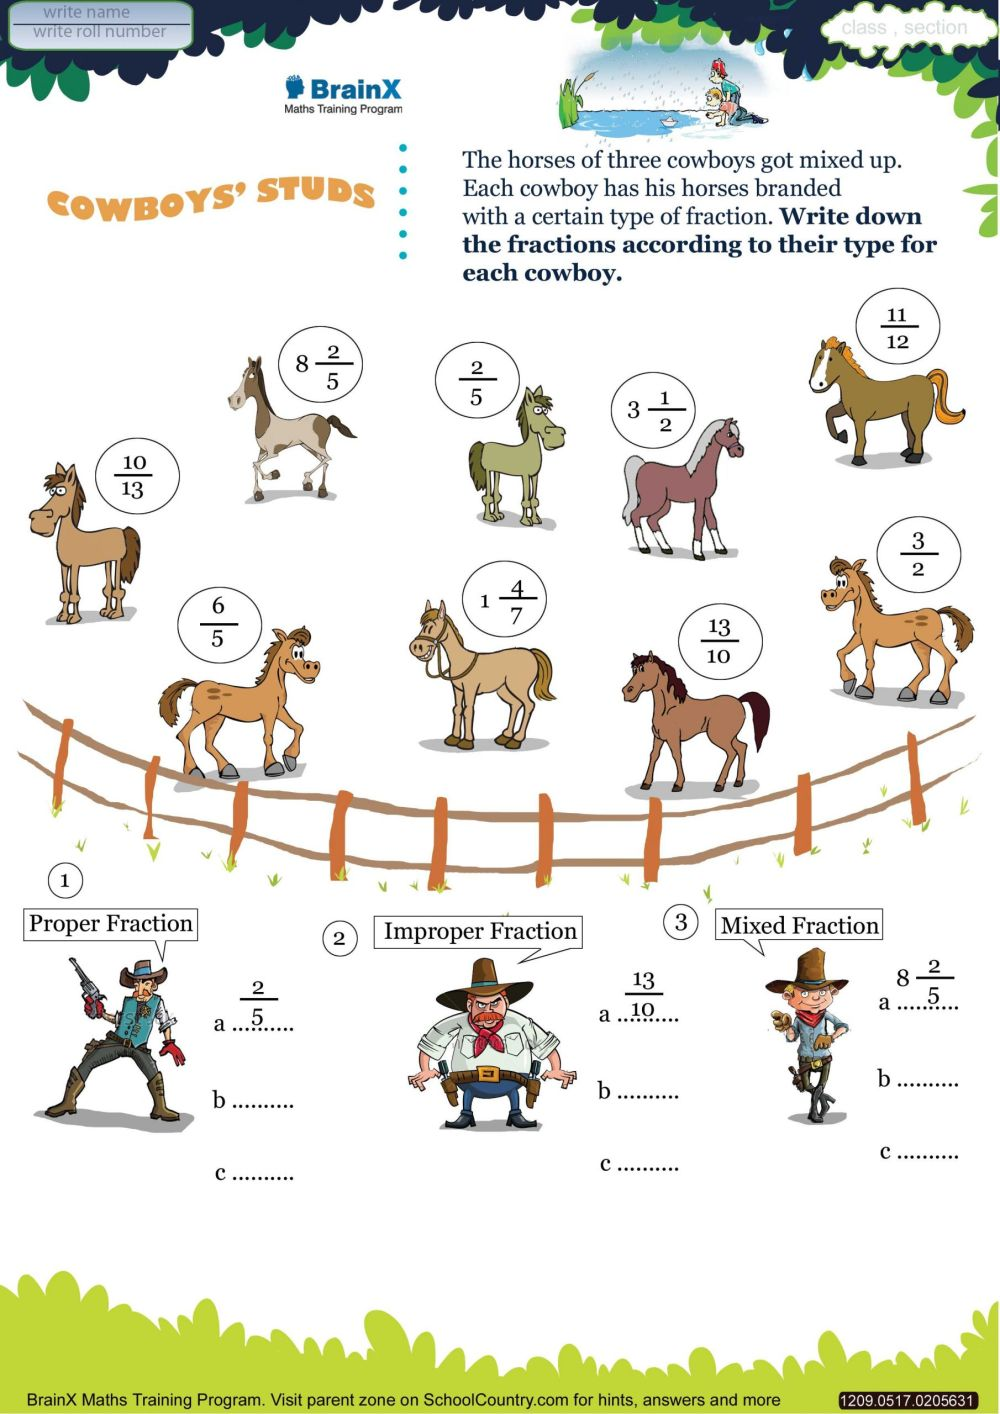 medium resolution of 7 Animals Worksheets Zoo - apocalomegaproductions.com